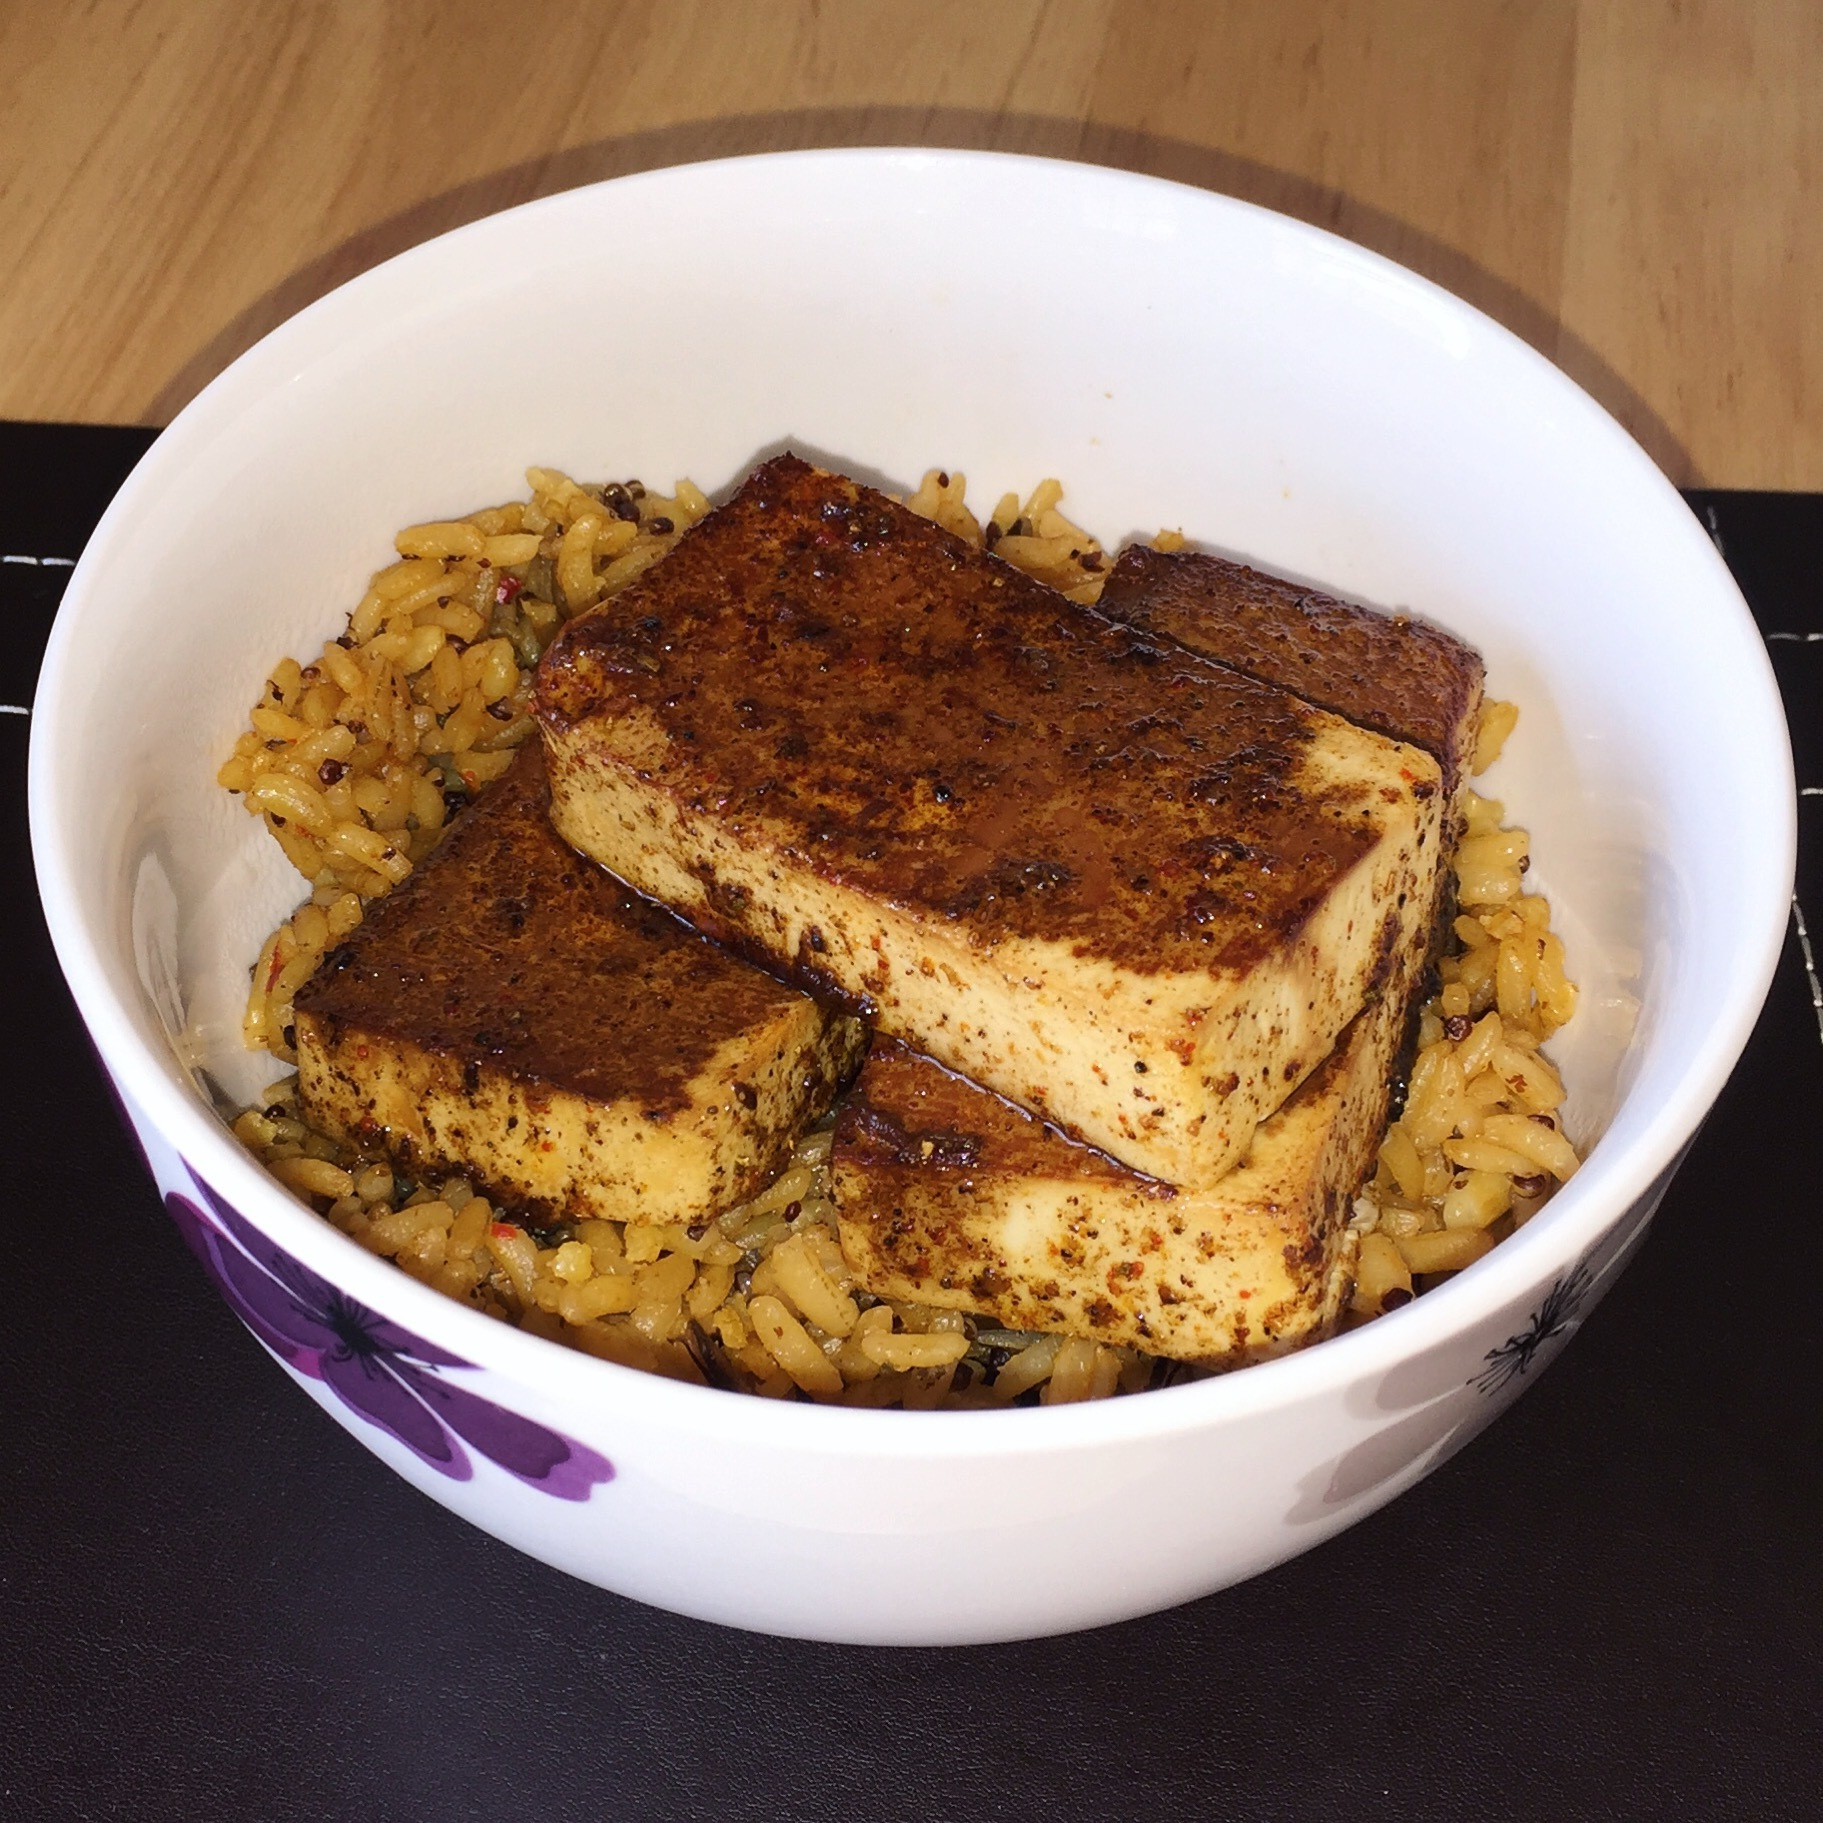 Baked Tofu with Spicy Baharat Marinade